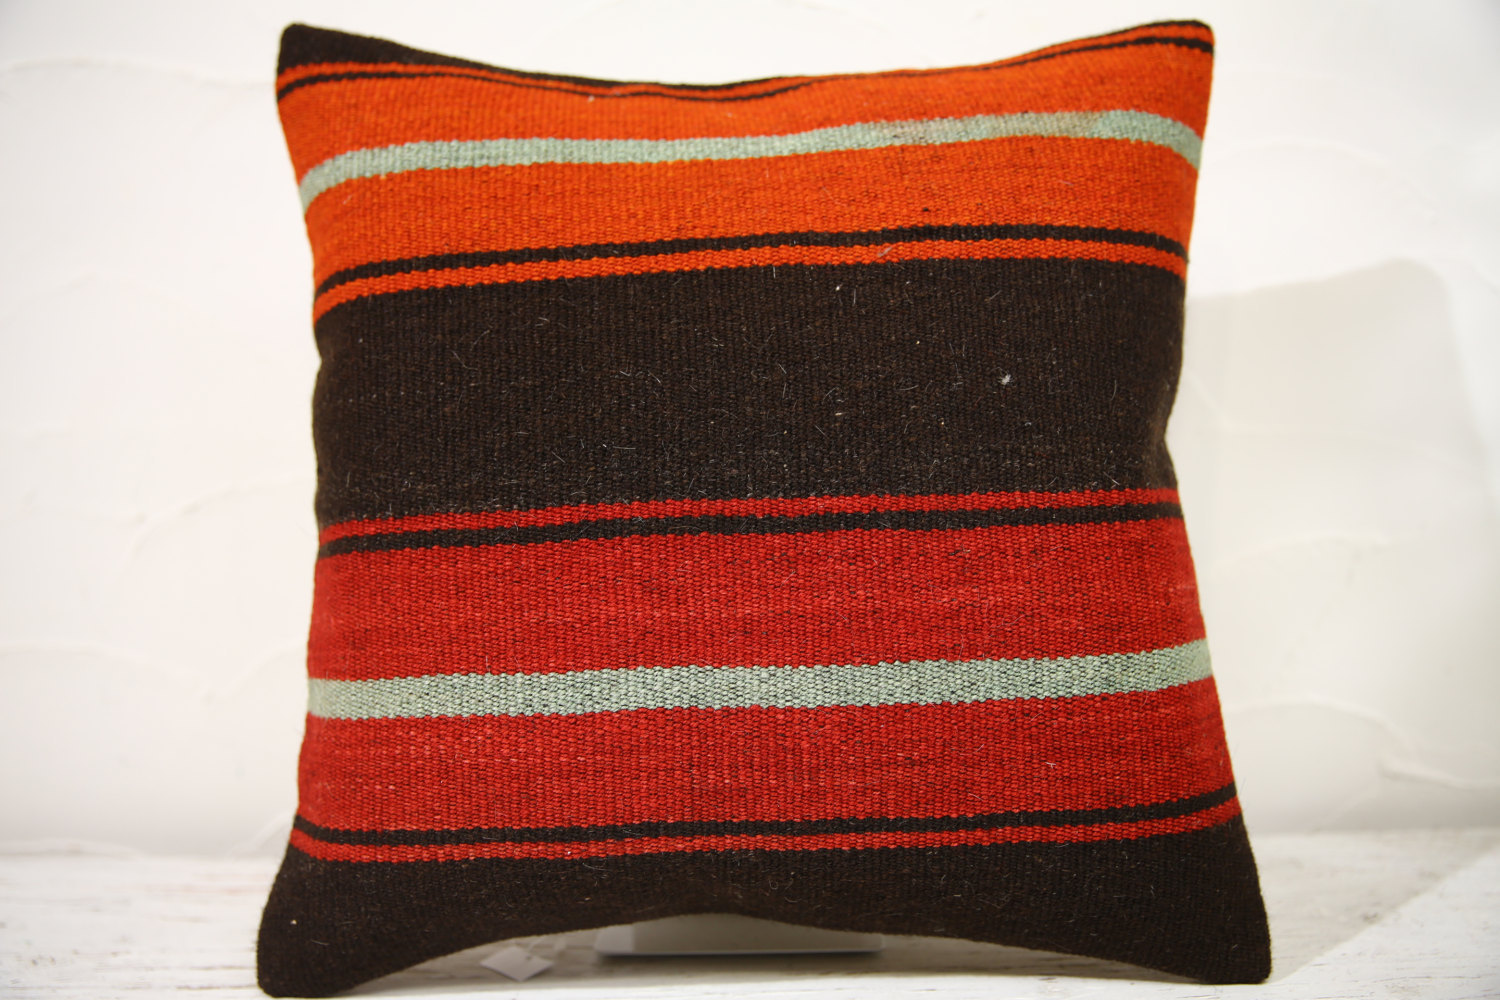 Kilim Pillows | 16x16 | Decorative Pillows | 778 | Accent Pillows,turkish pillow